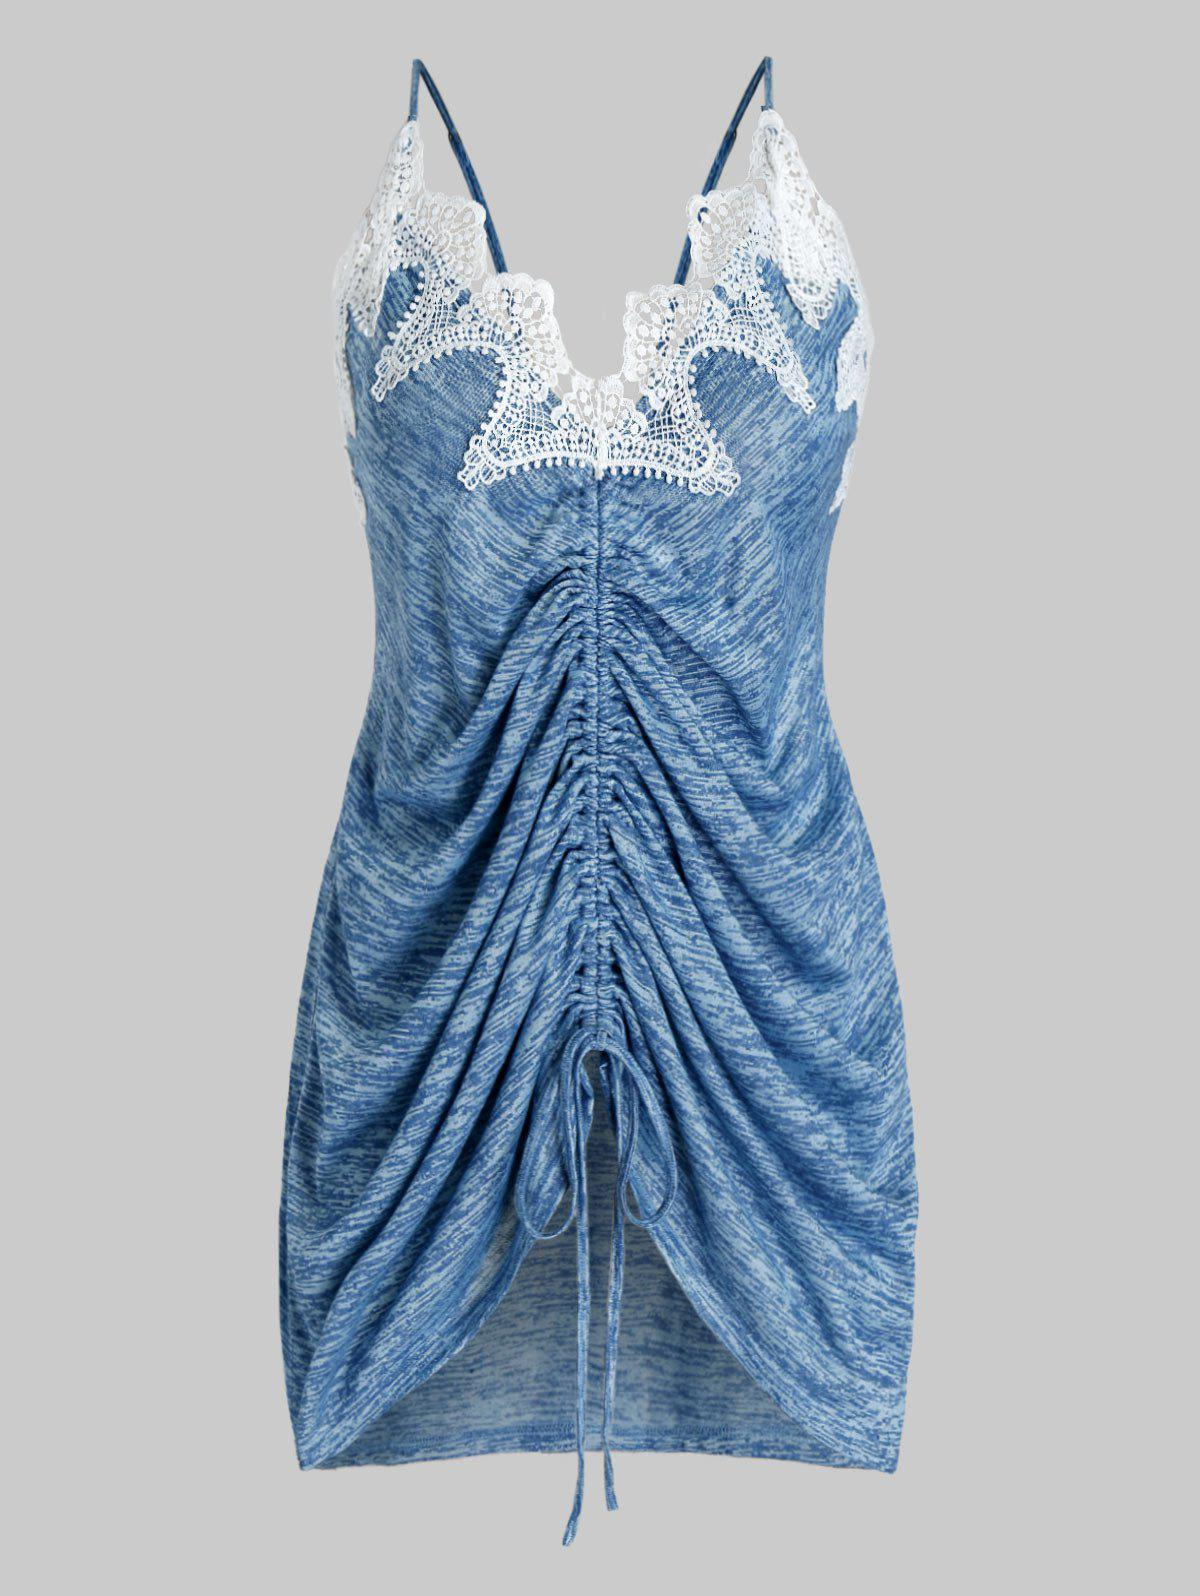 Plus Size Contras Lace Cinched Marled Tank Top - PEACOCK BLUE 5X